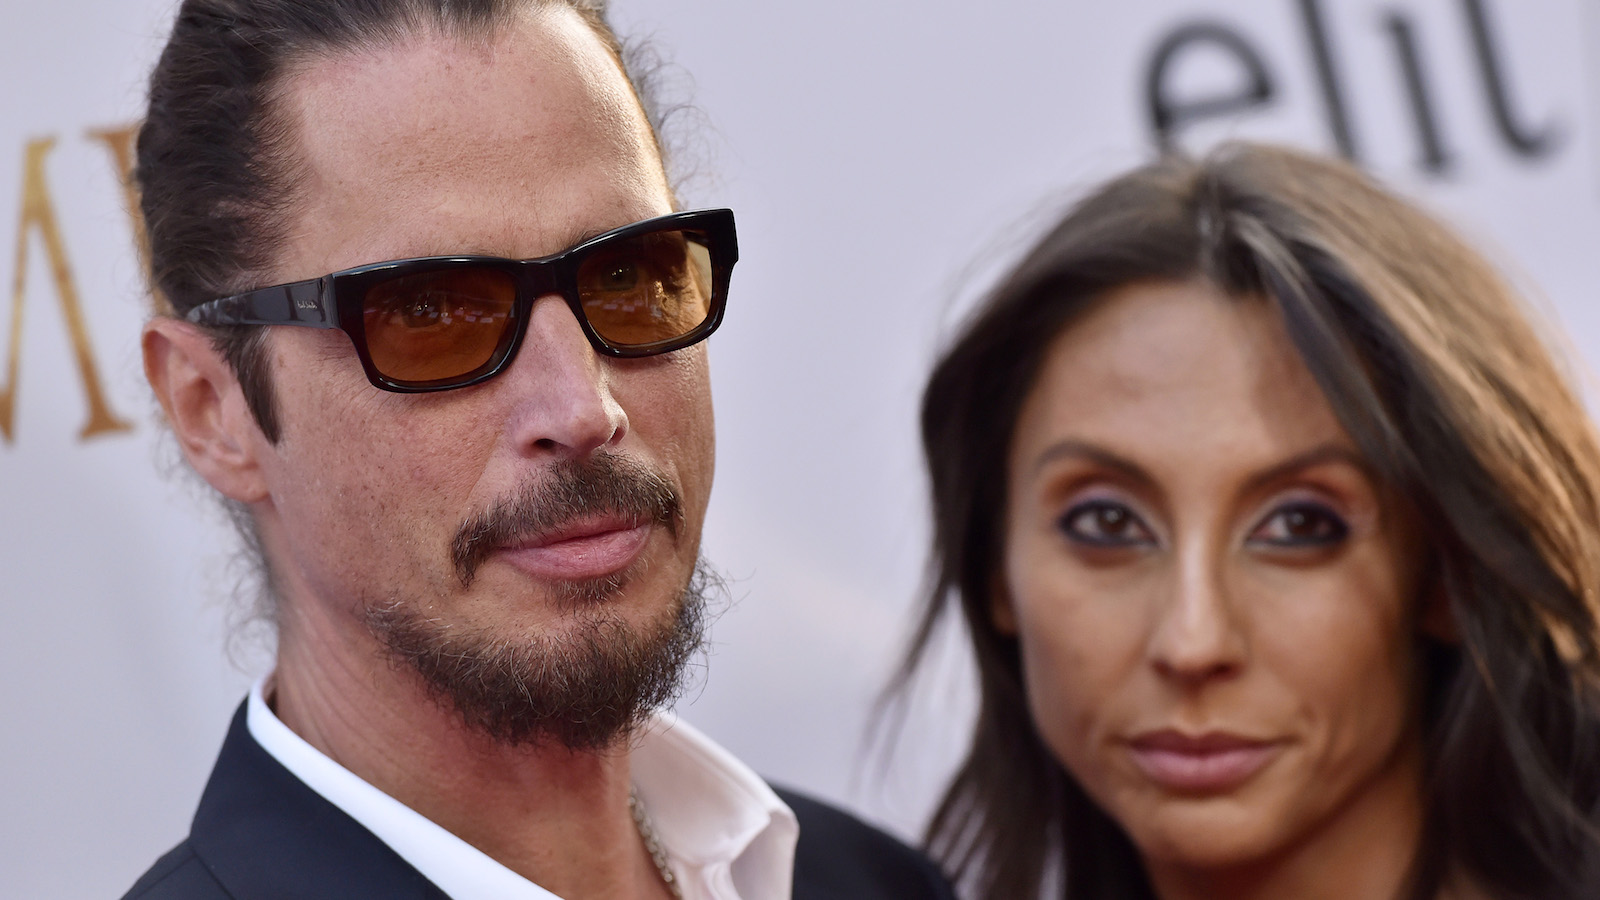 Chris Cornell's Widow Vicky Comments on Lawsuit Against Soundgarden Members